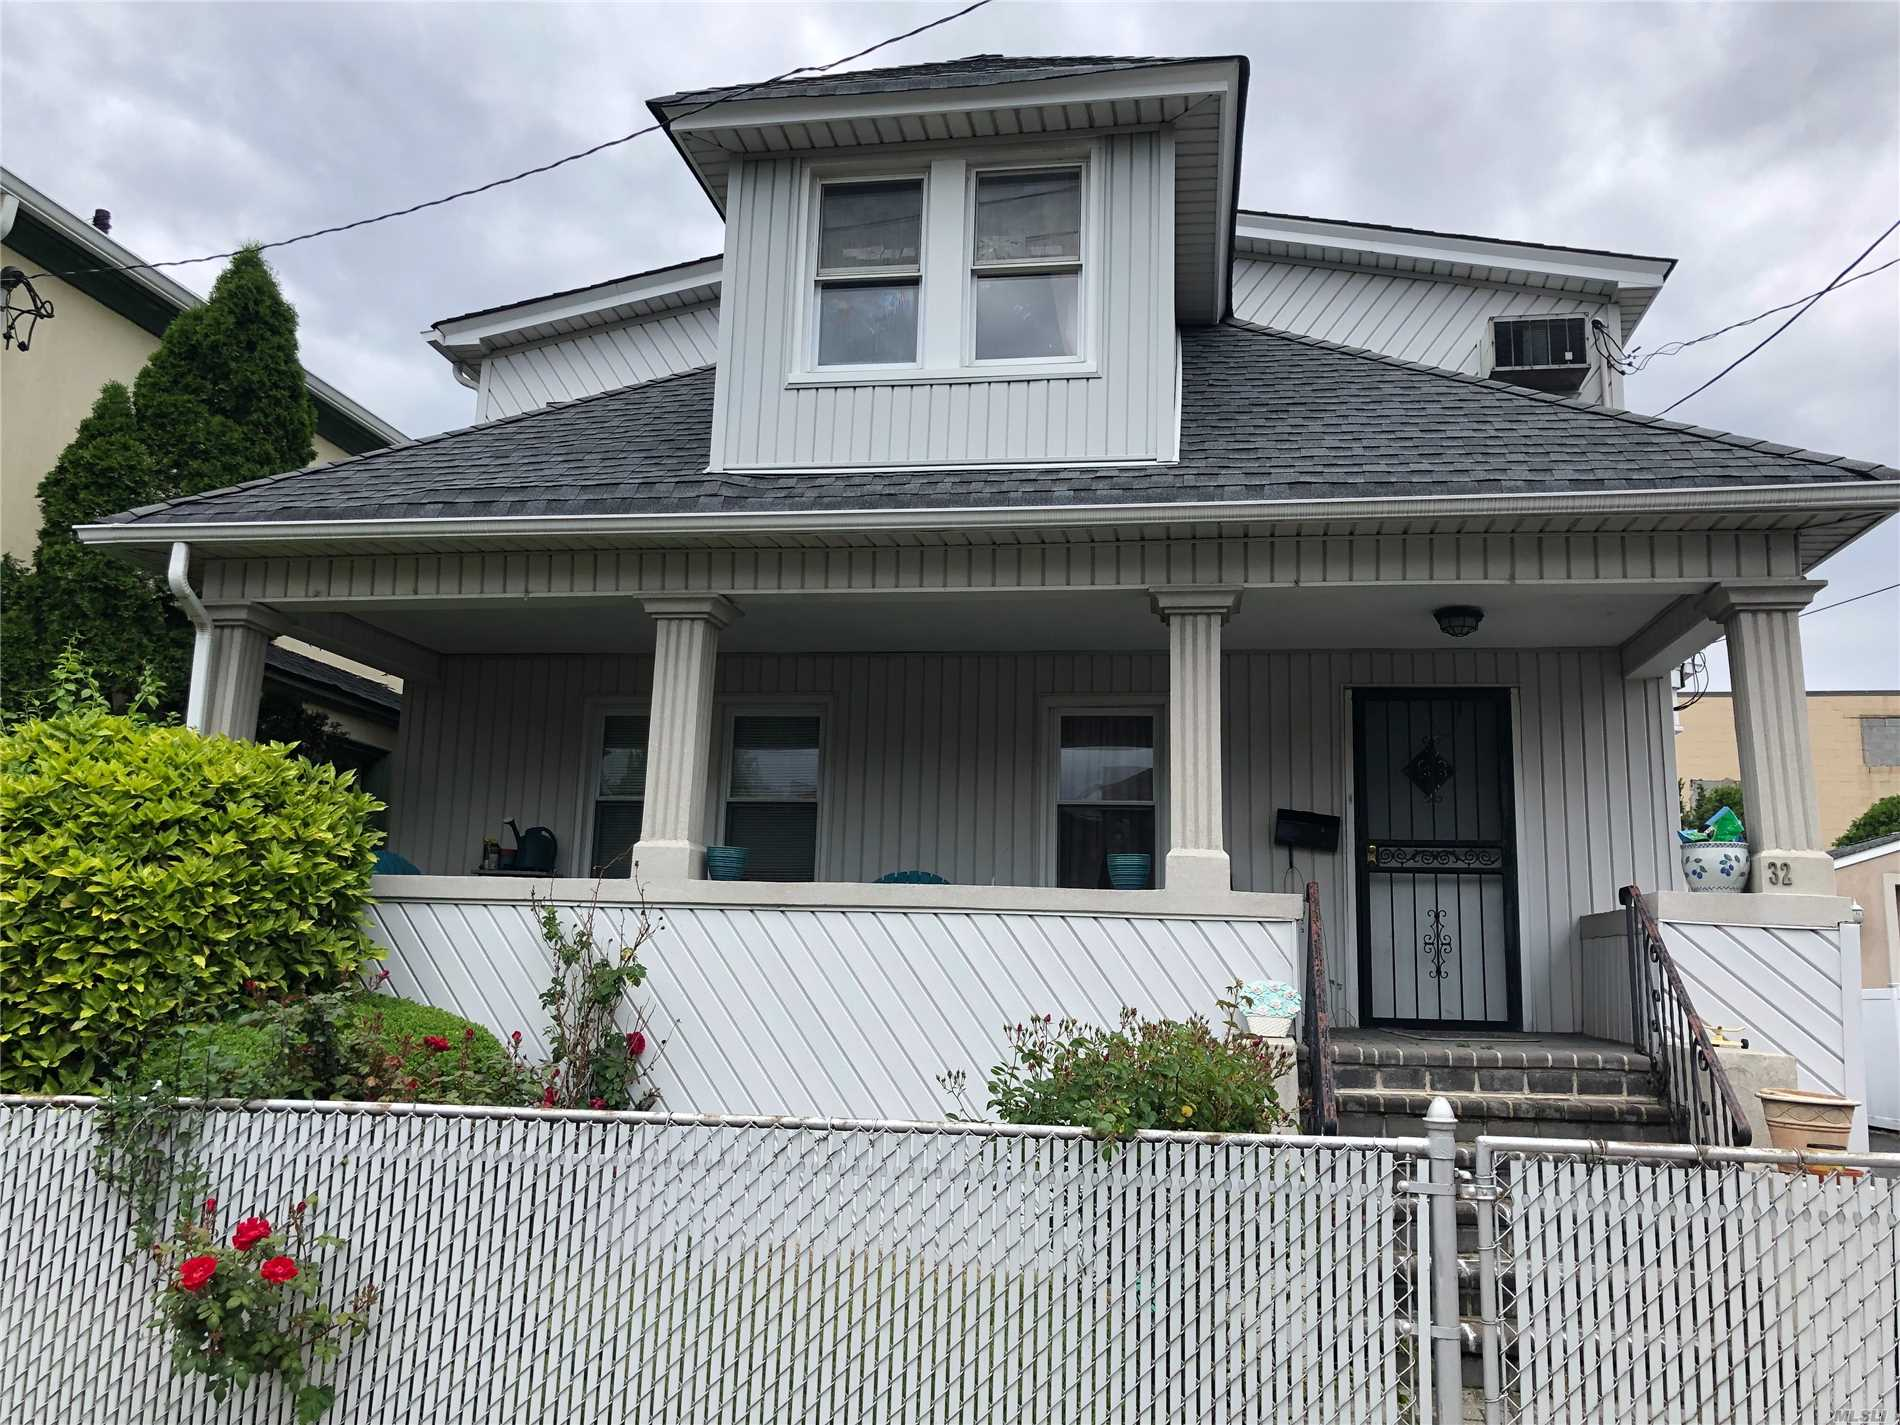 Legal 2 family home. Large 2 bedroom over 3 Bedroom. Gas for cooking and Dryer.